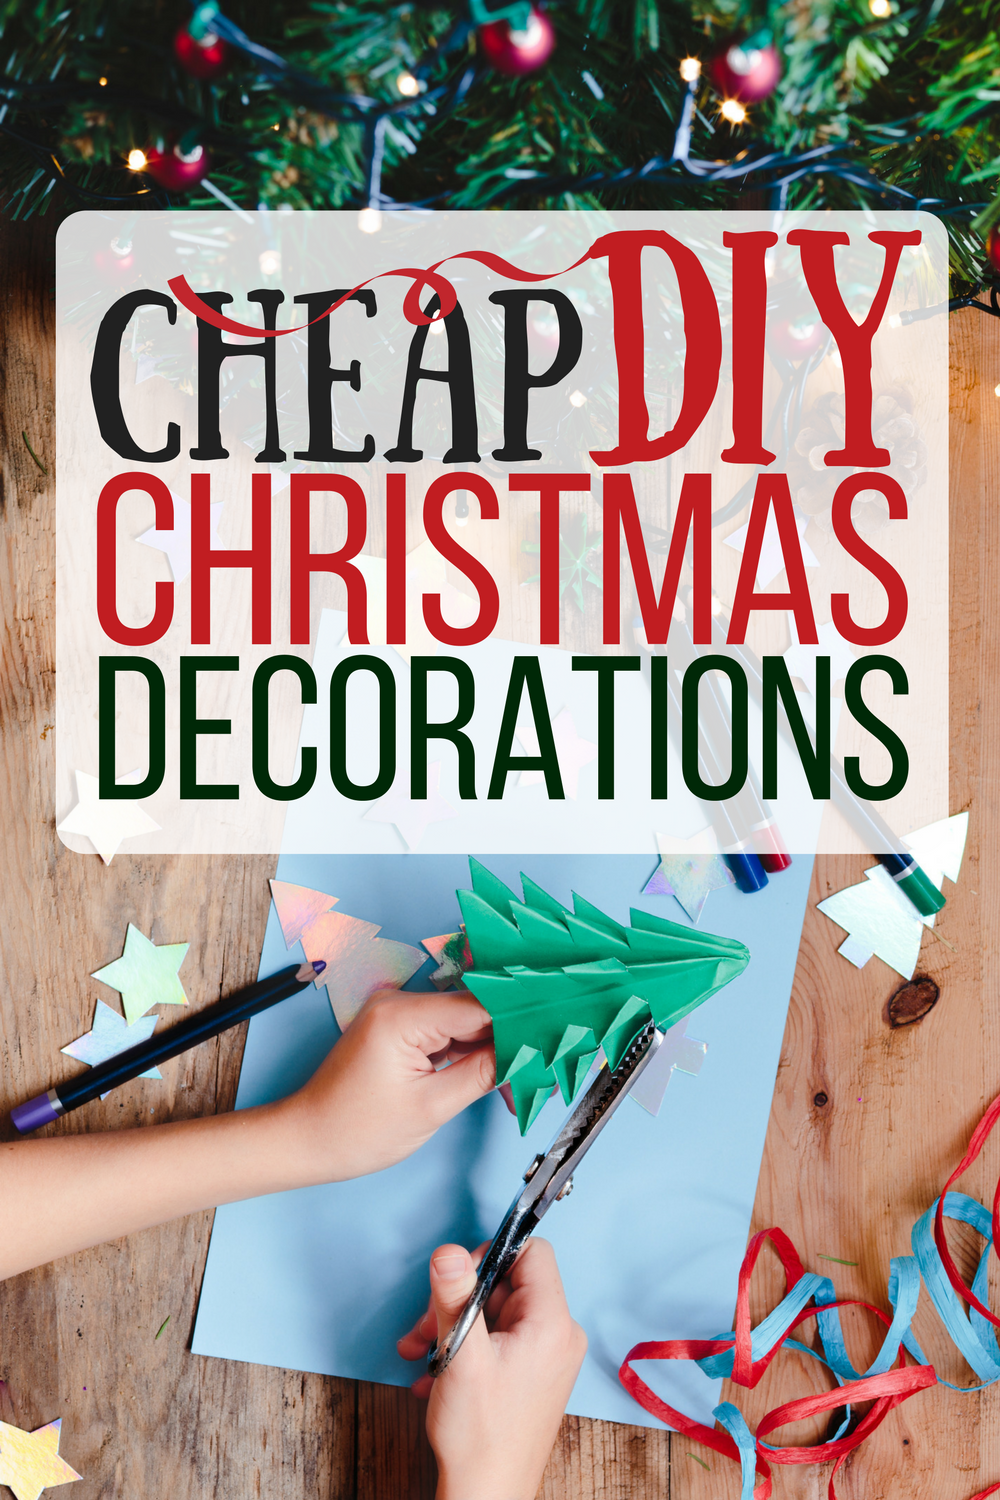 cheap easy diy christmas decorations thanks i was trying to figure out how - Best Place To Buy Christmas Decorations